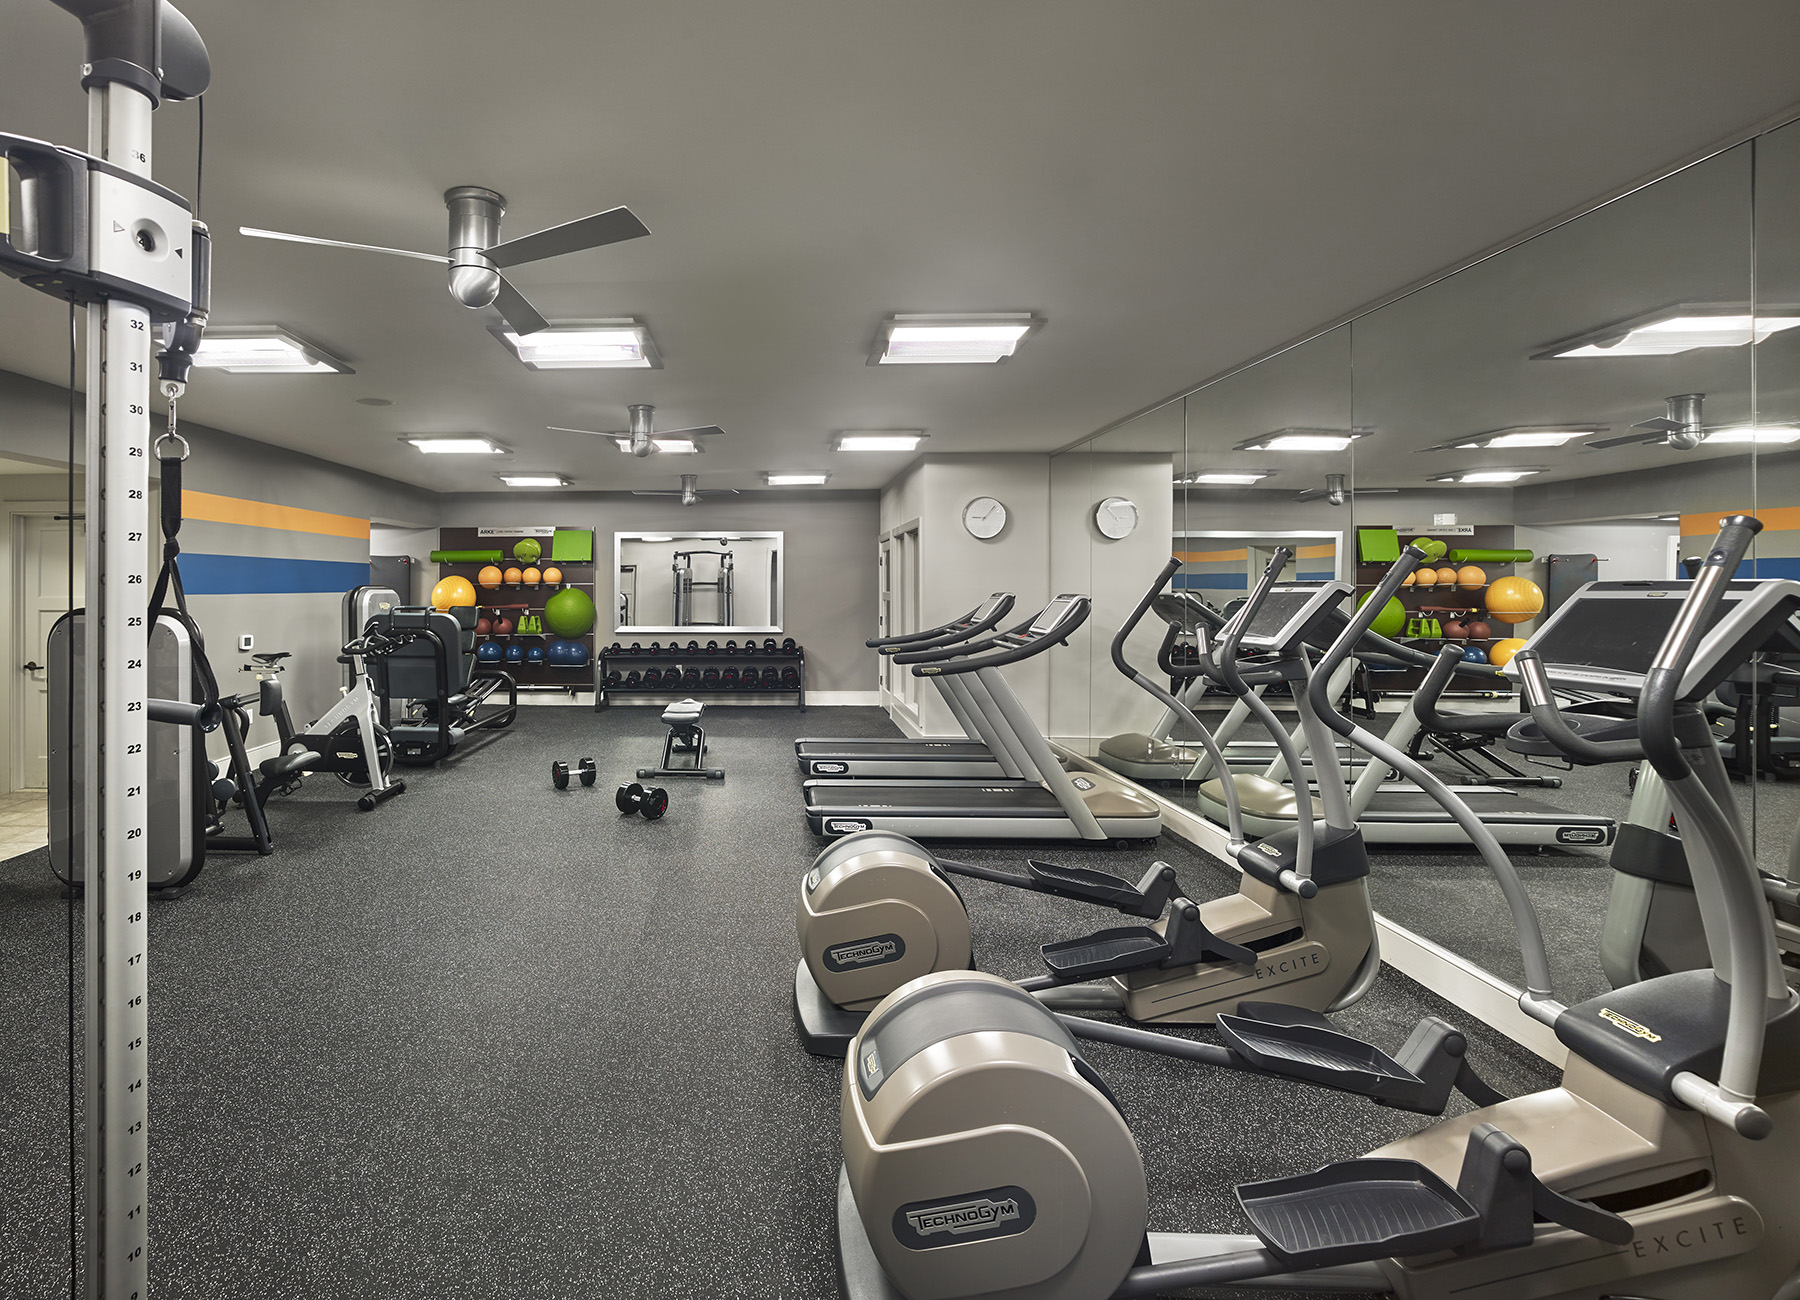 Modern fitness facility with cardio machines, free weights, and yoga balls